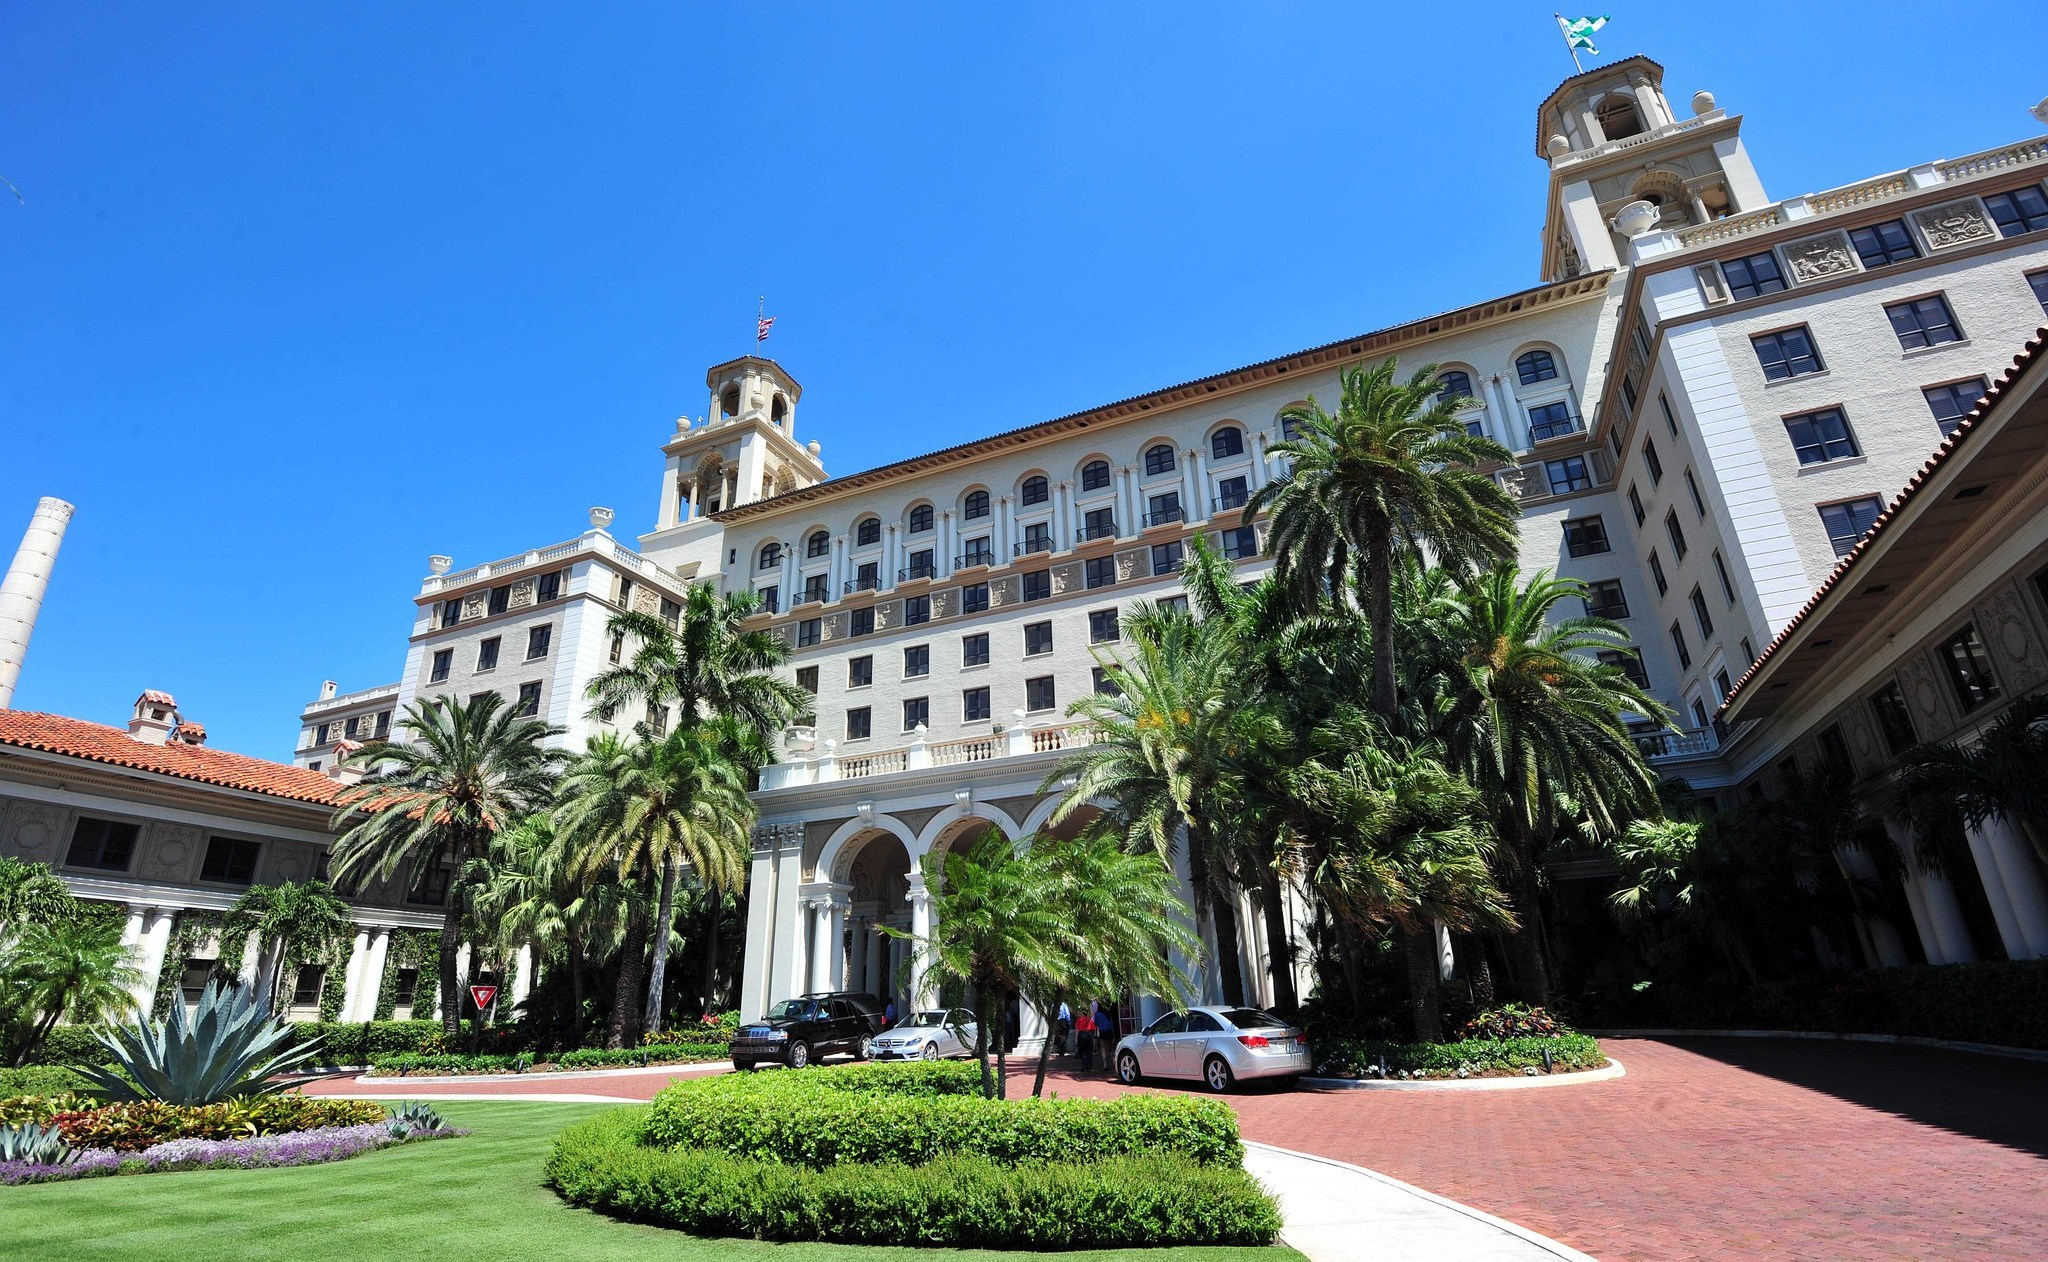 Things every South Floridian should do once - The Breakers Palm Beach